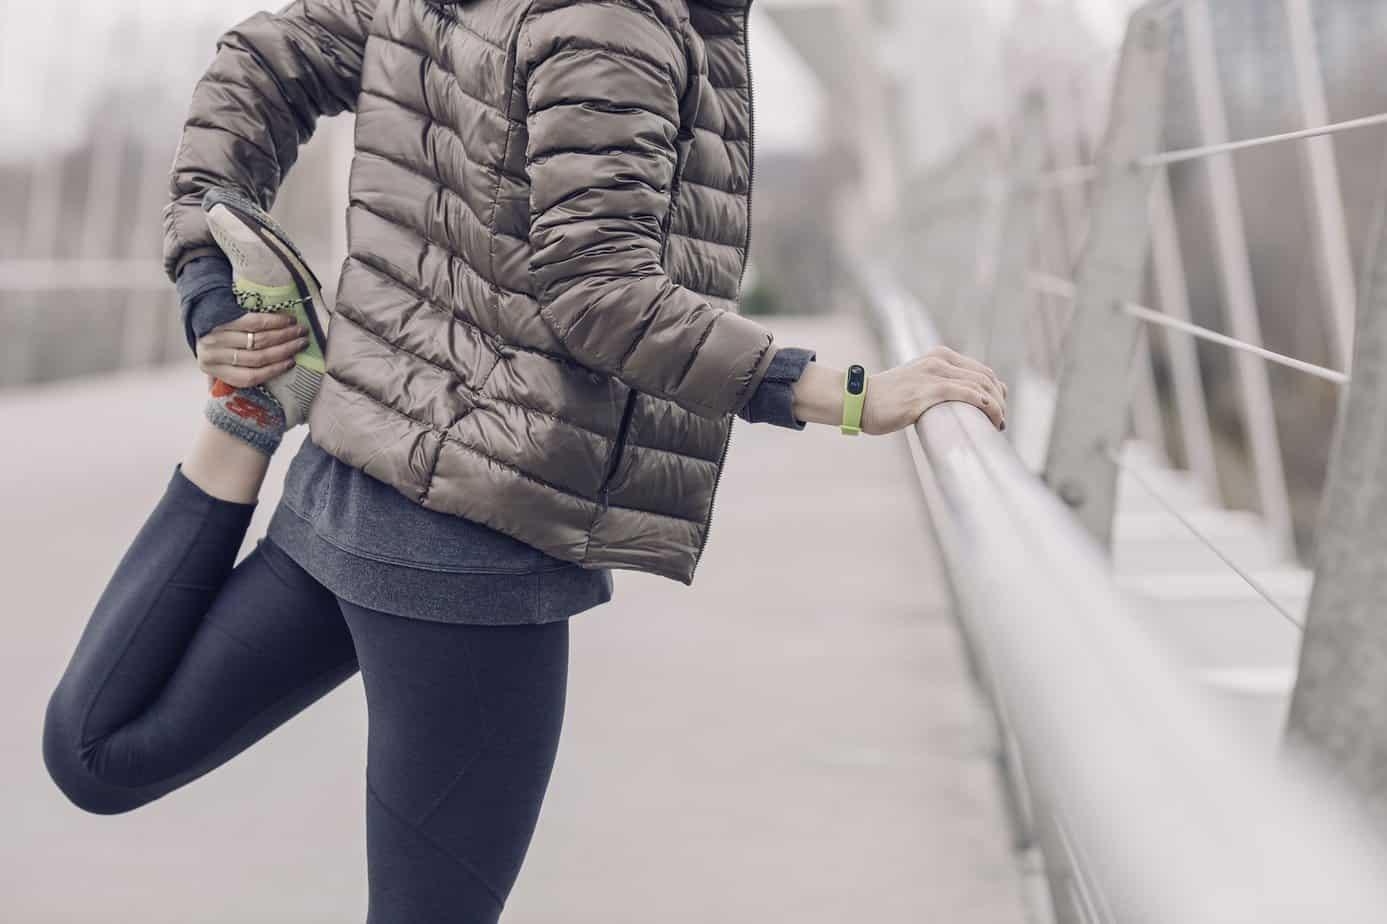 e829aafd355e What to Wear for Cold Weather Running - The Wired Runner